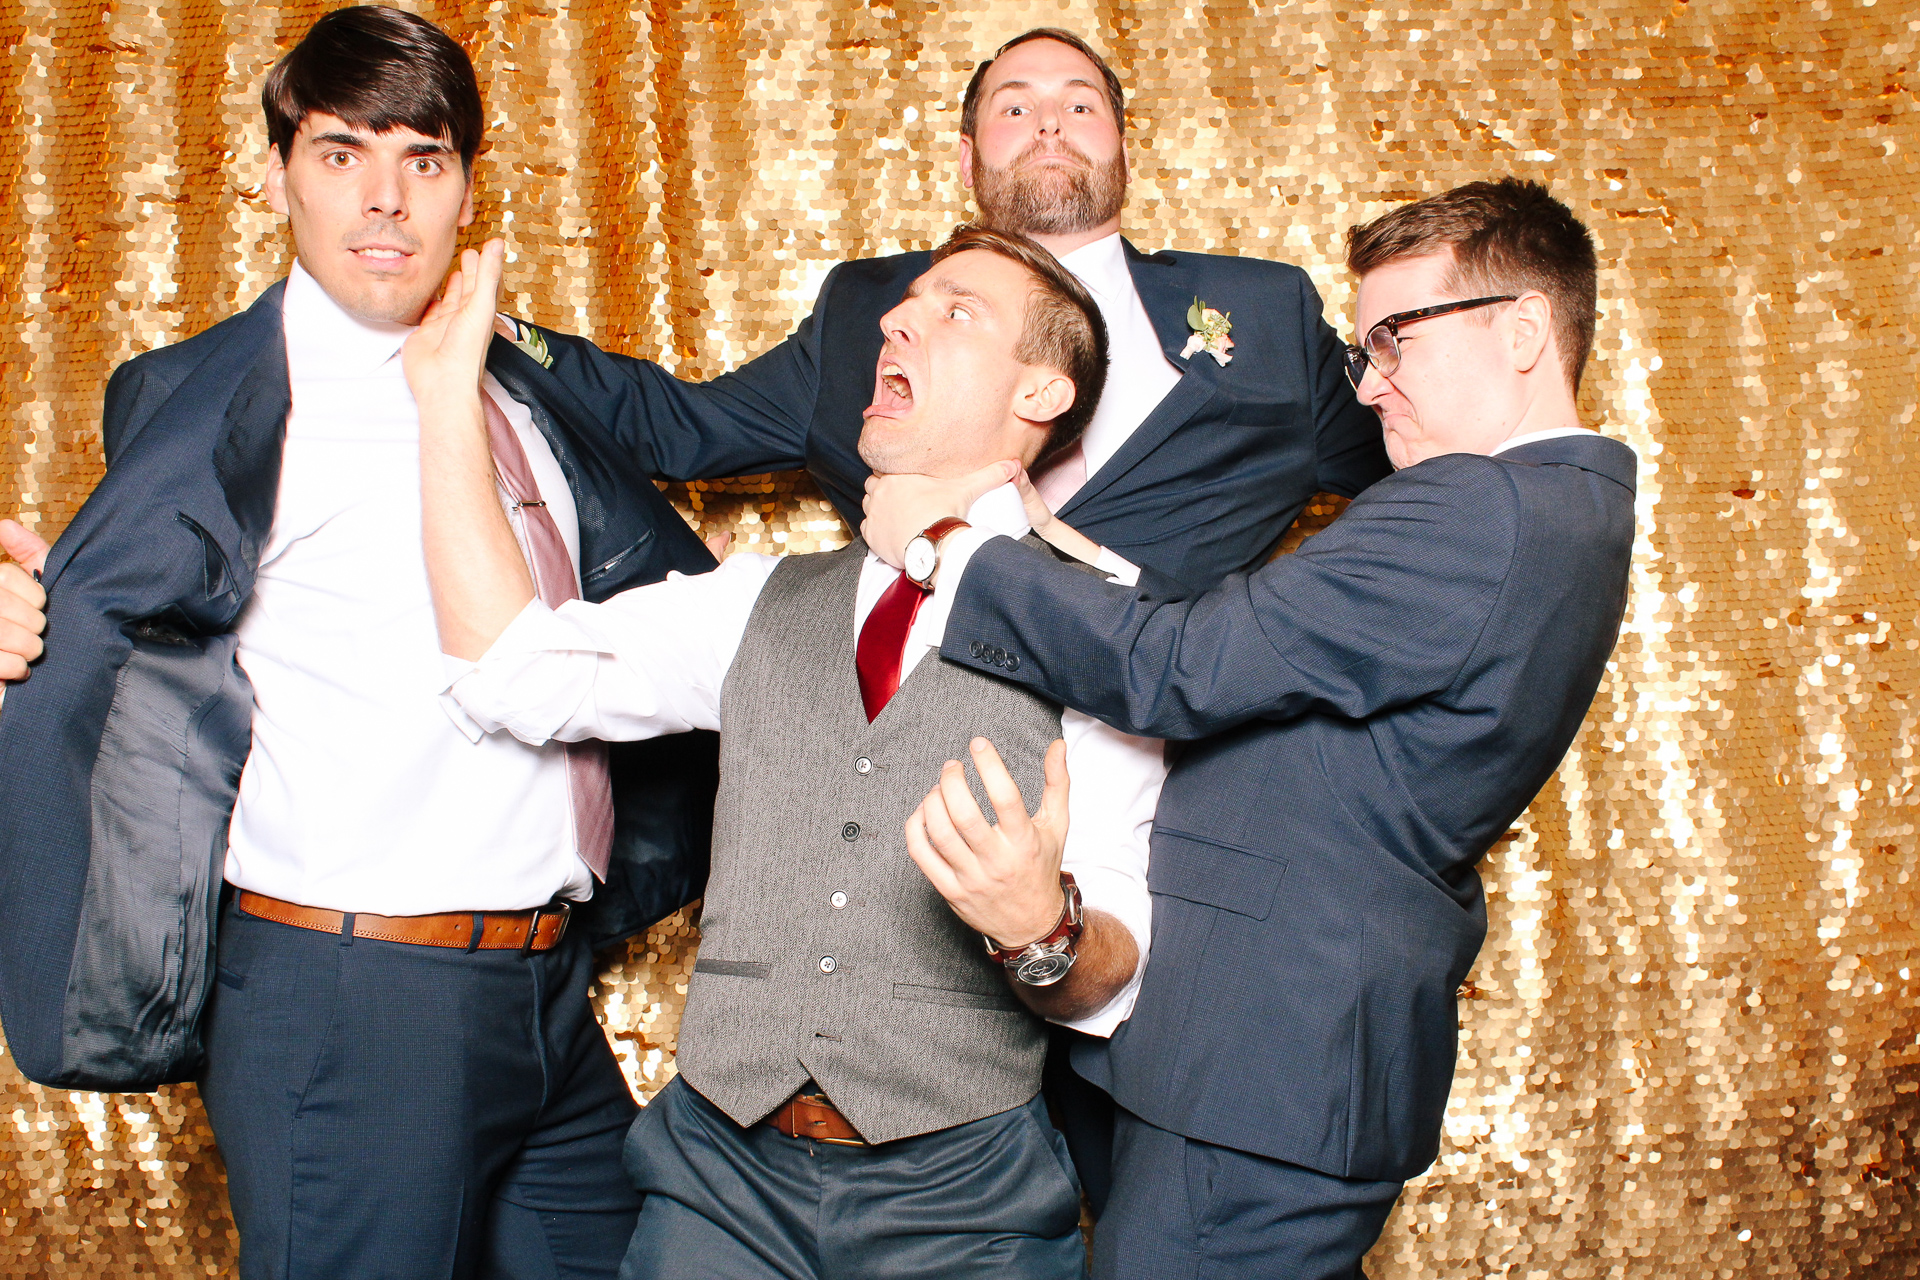 00163 Union Club Wedding Photobooth in Cleveland.jpg